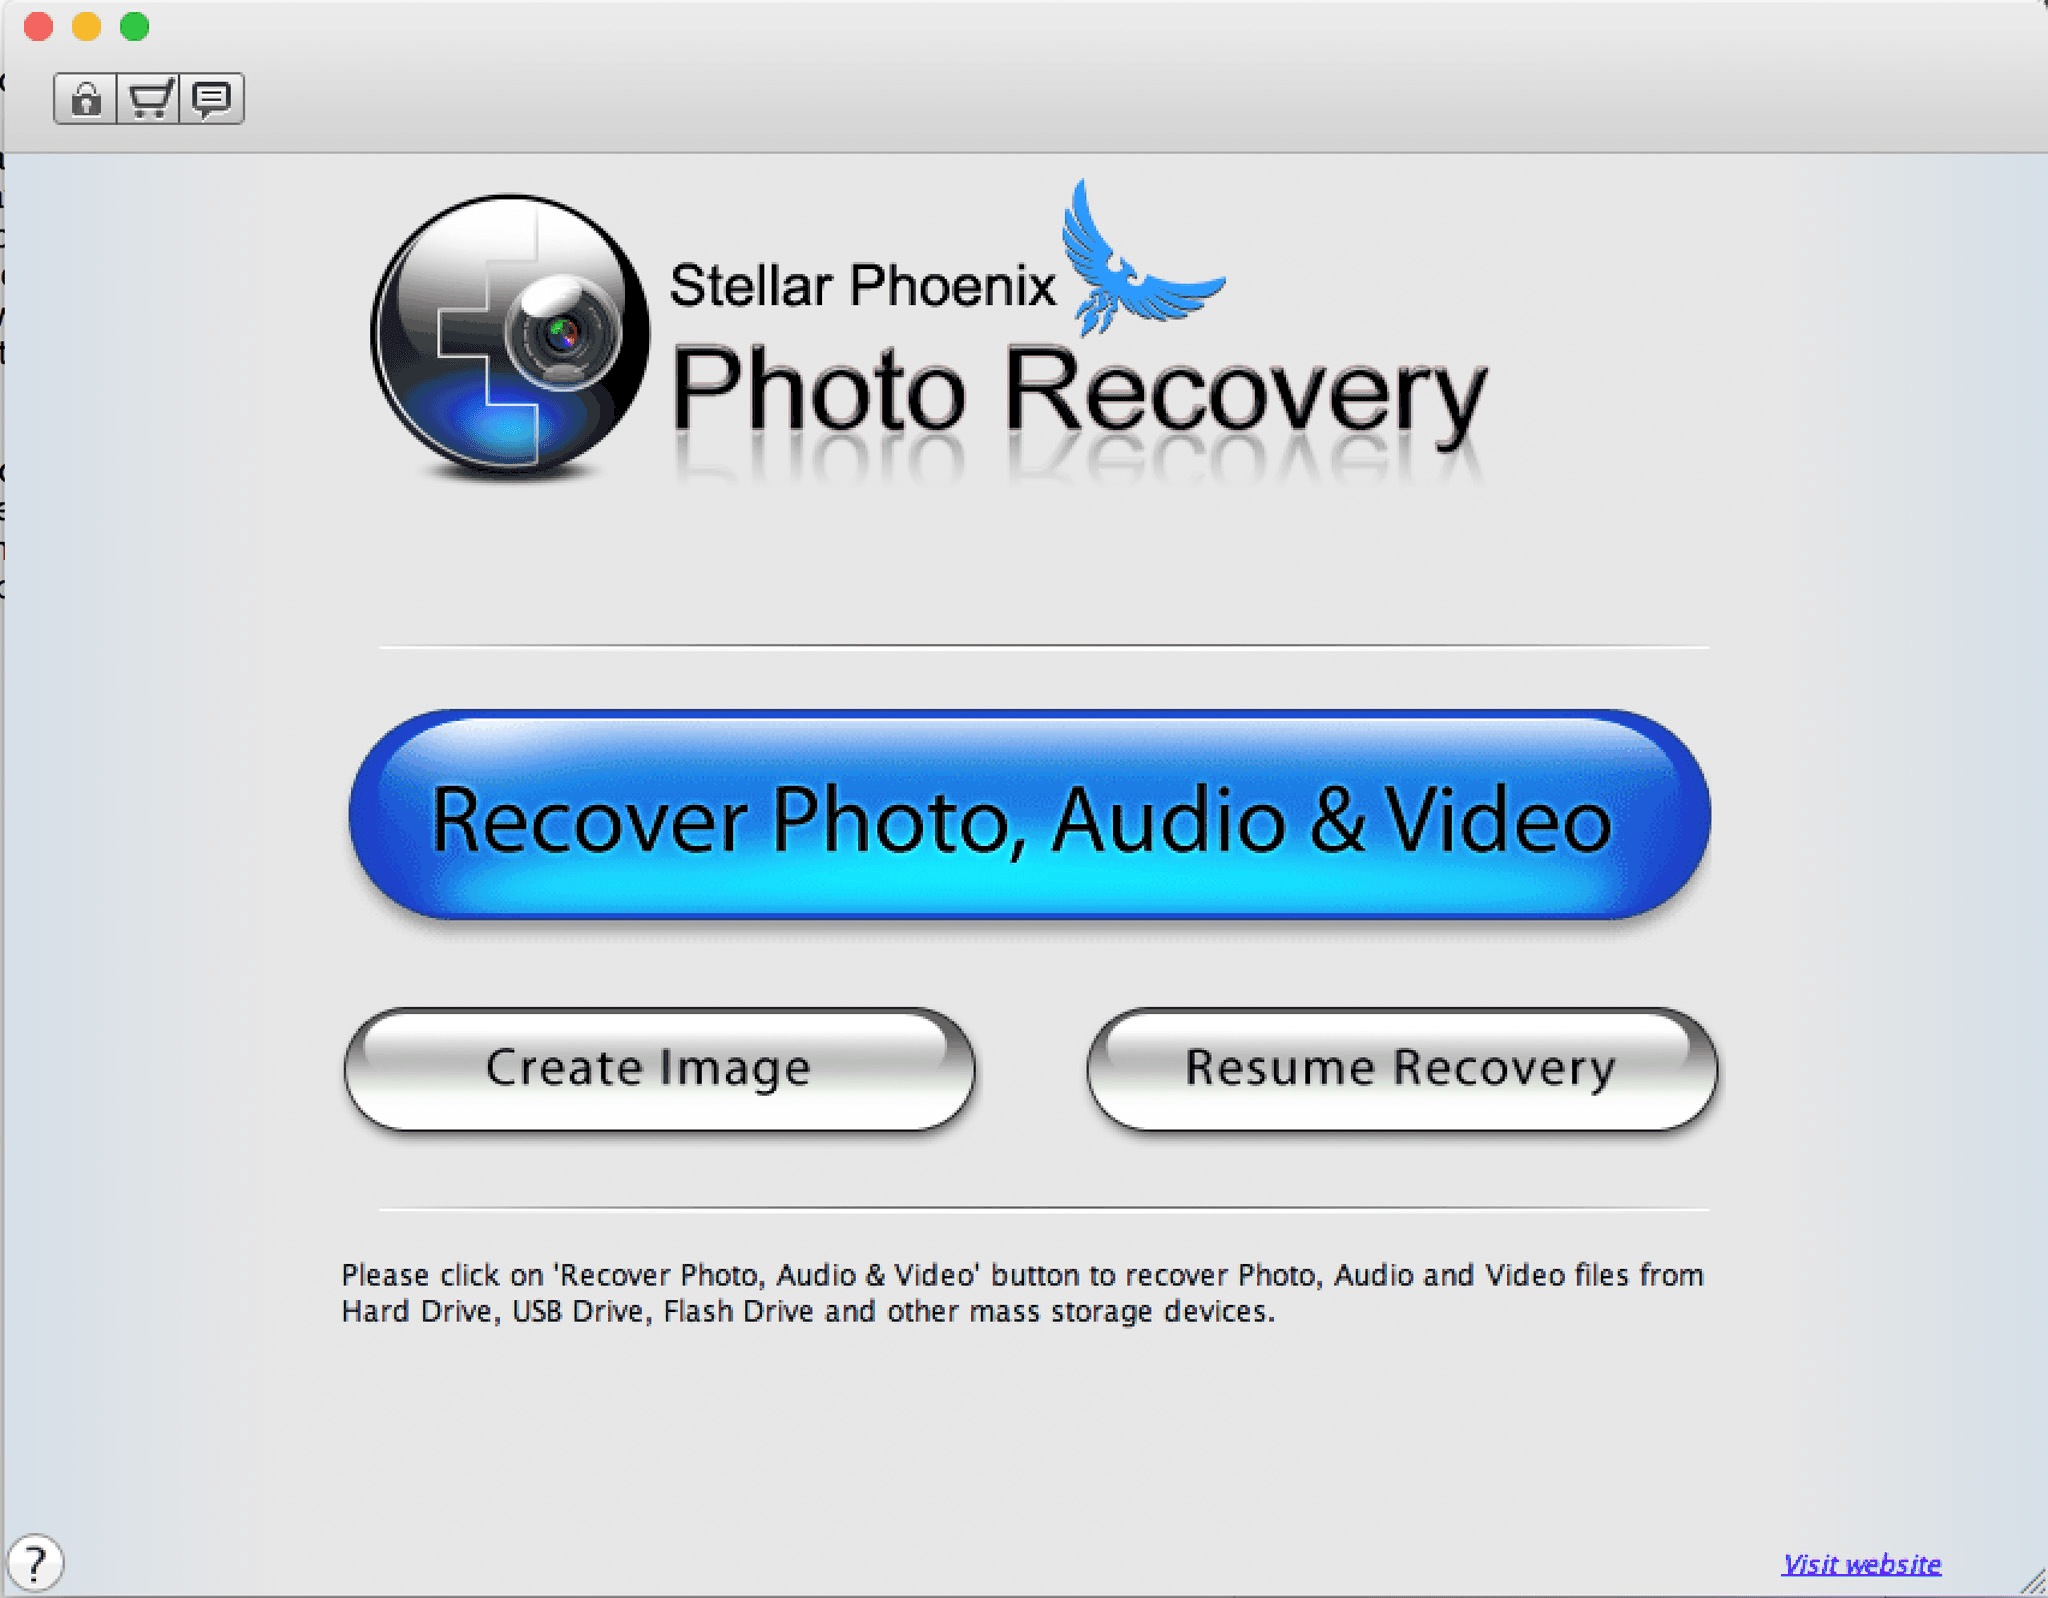 How Can We Recover Our Deleted Photos? 2